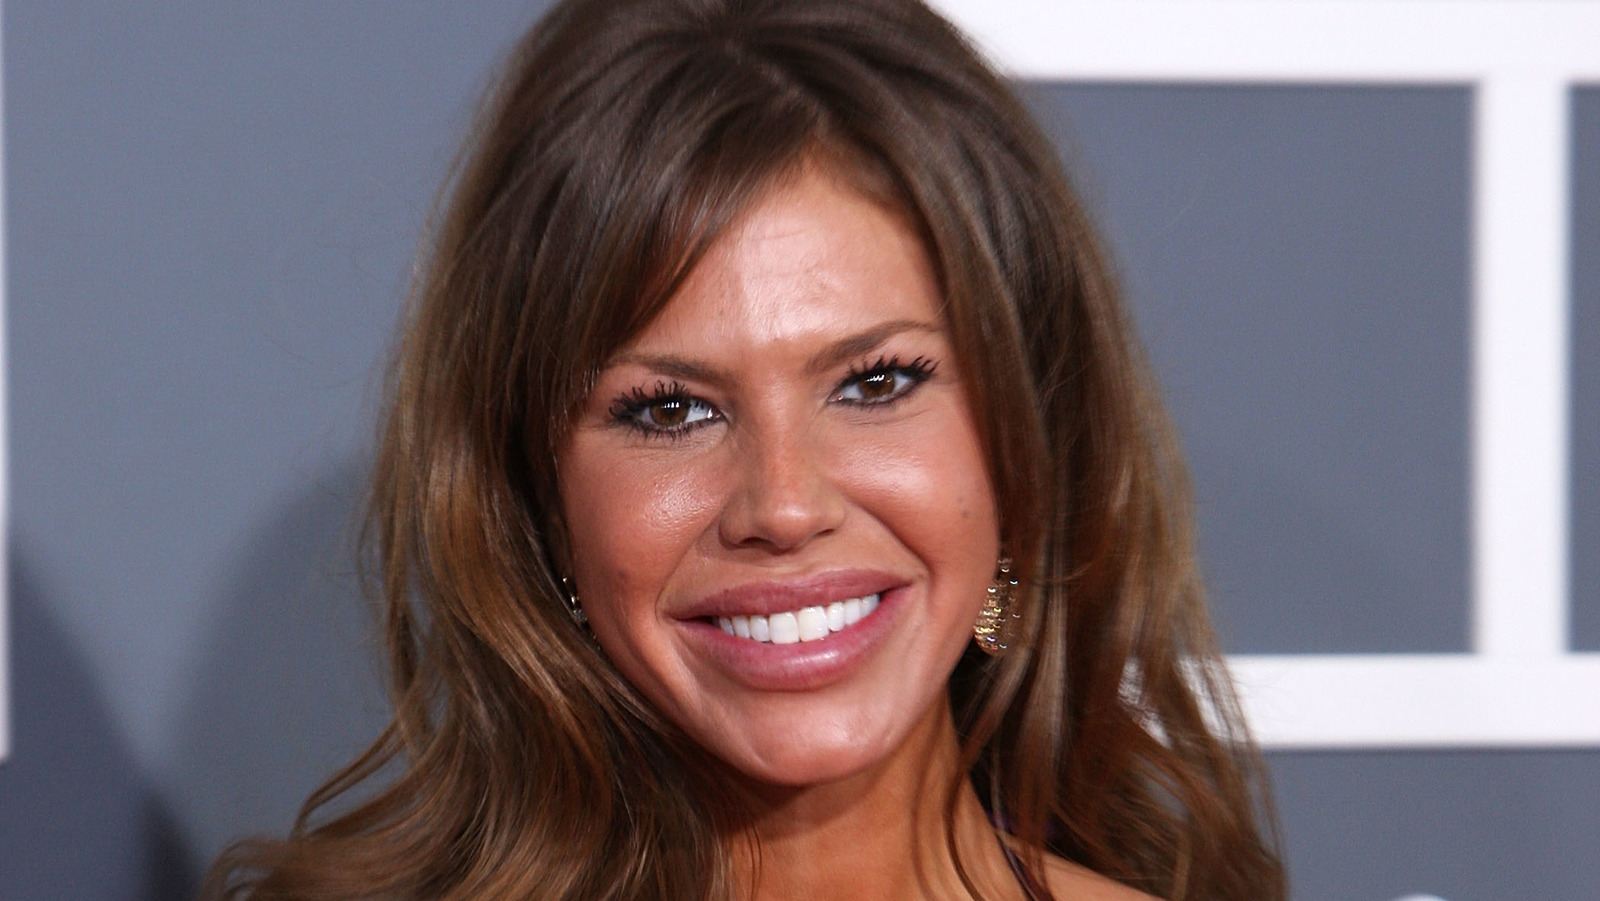 What you should know about Nikki Cox's plastic surgery